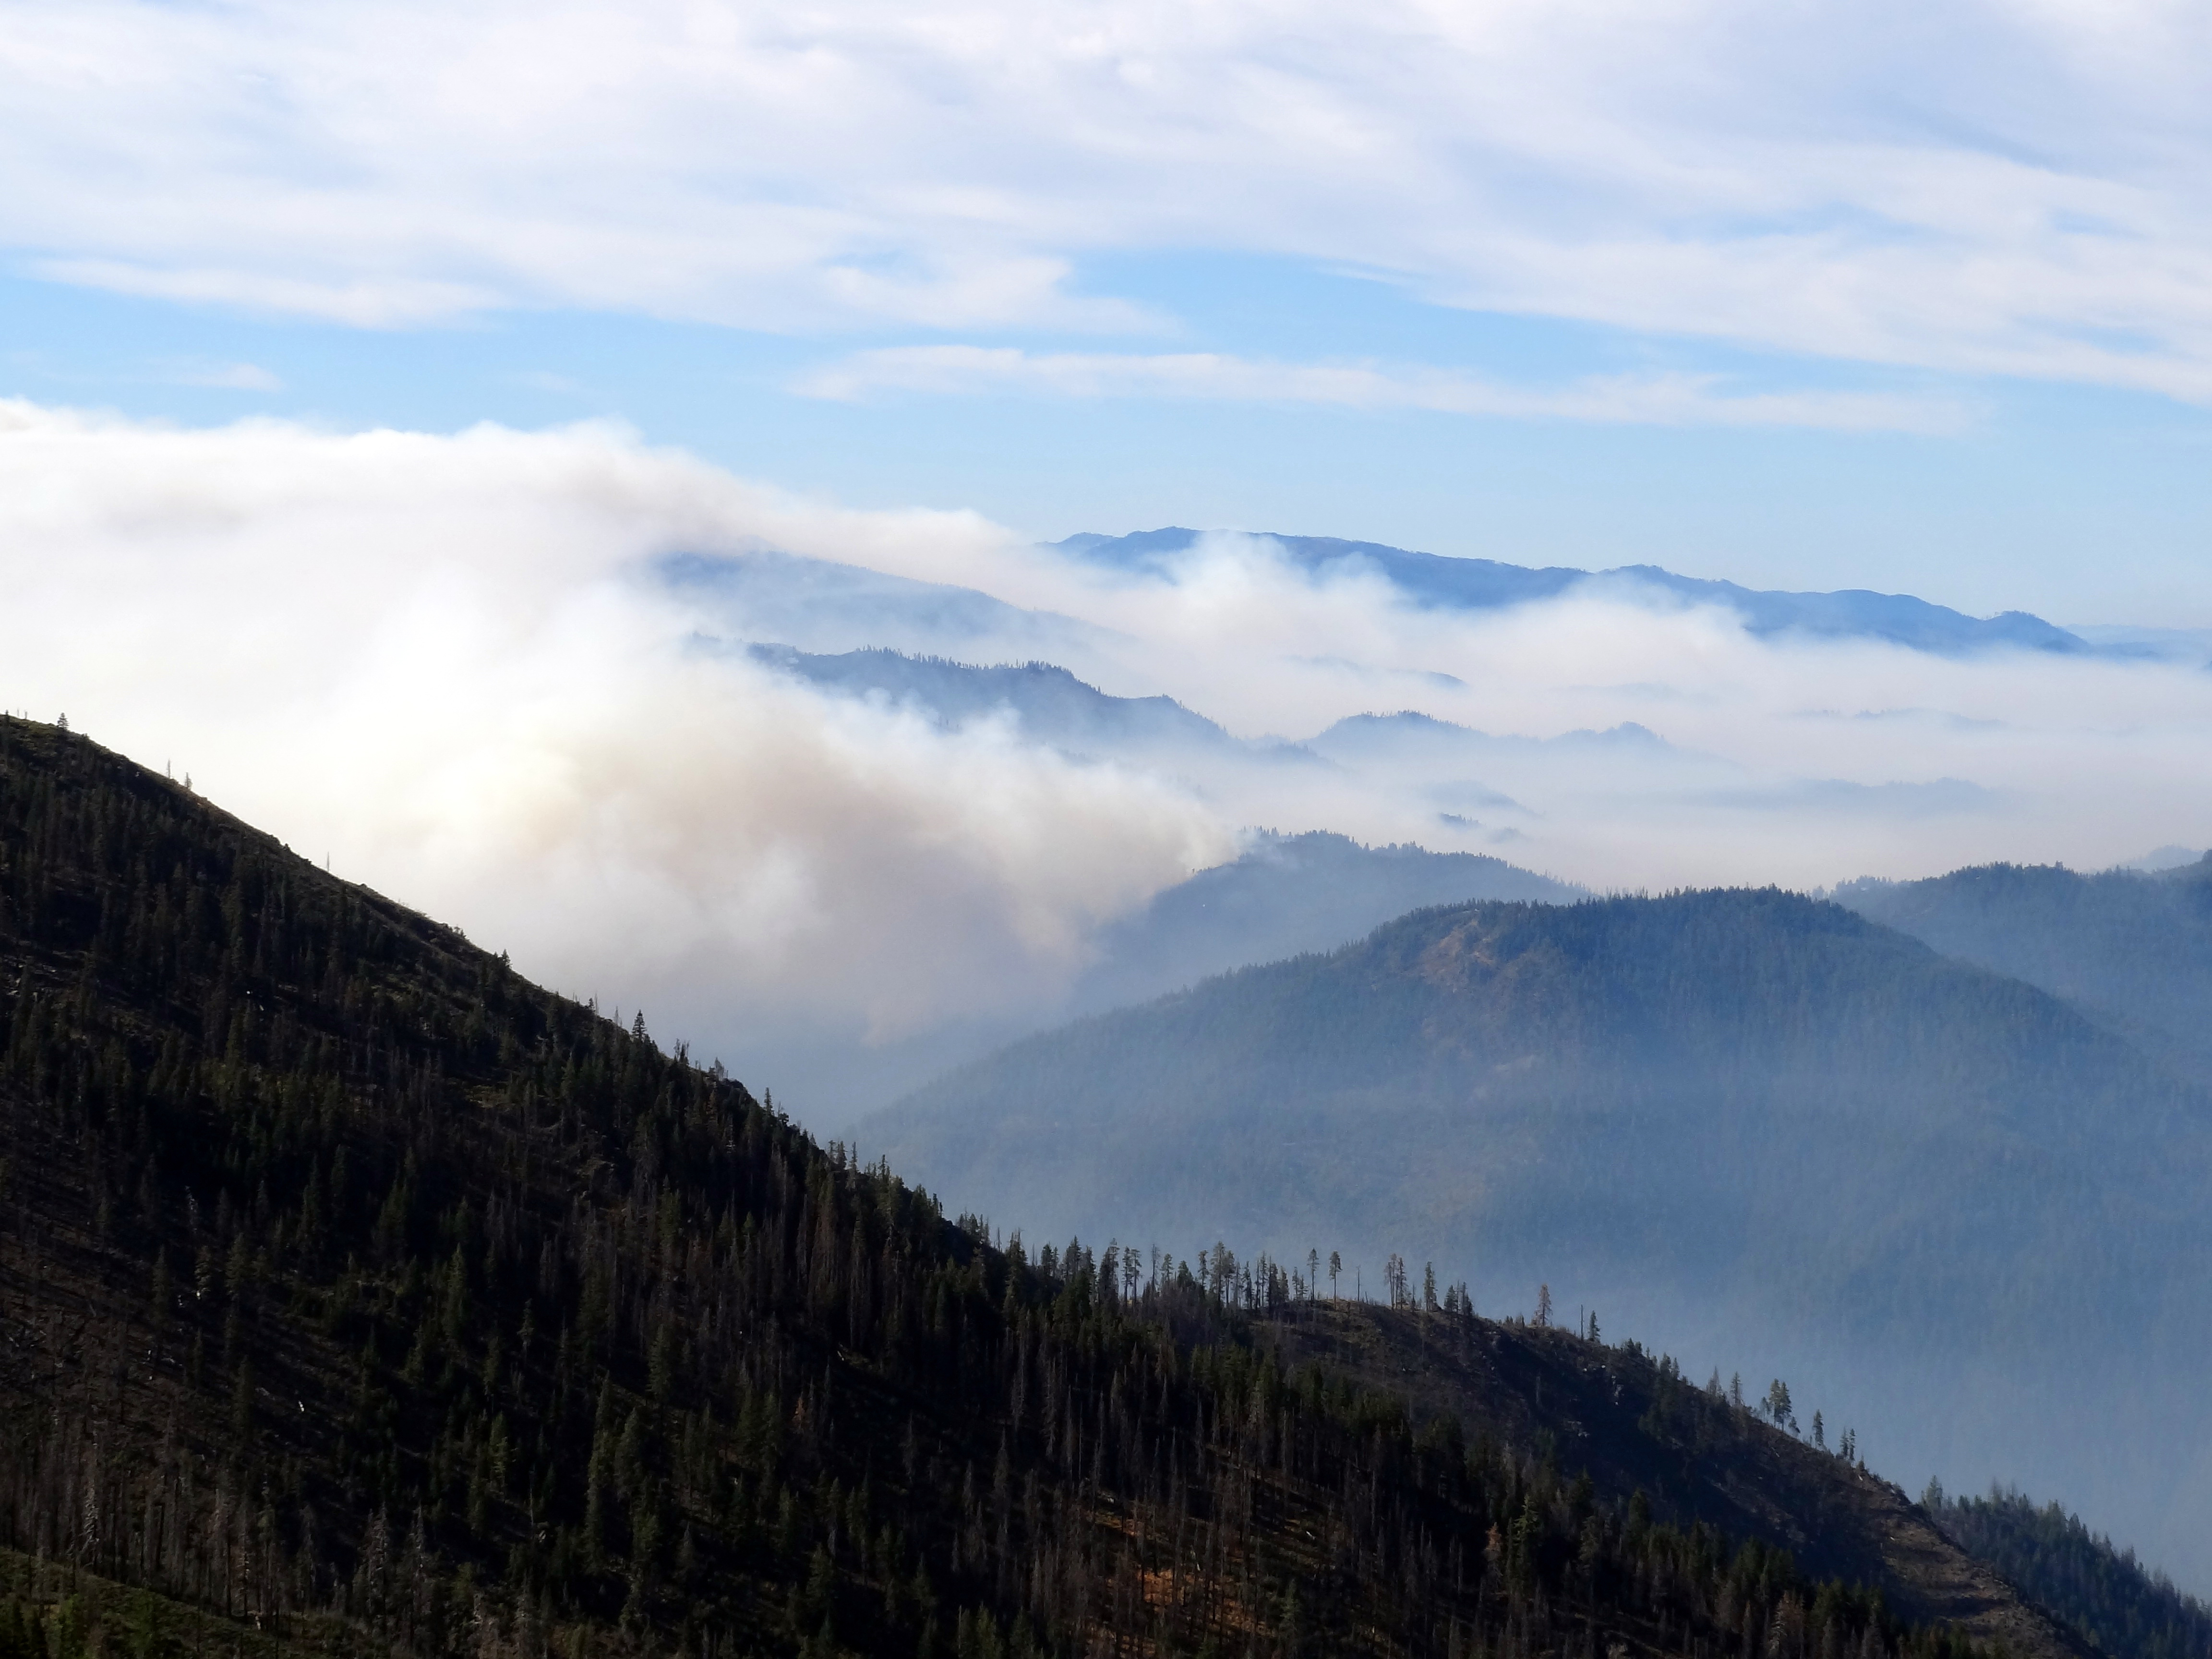 Smoke billows through the air over forested valley.